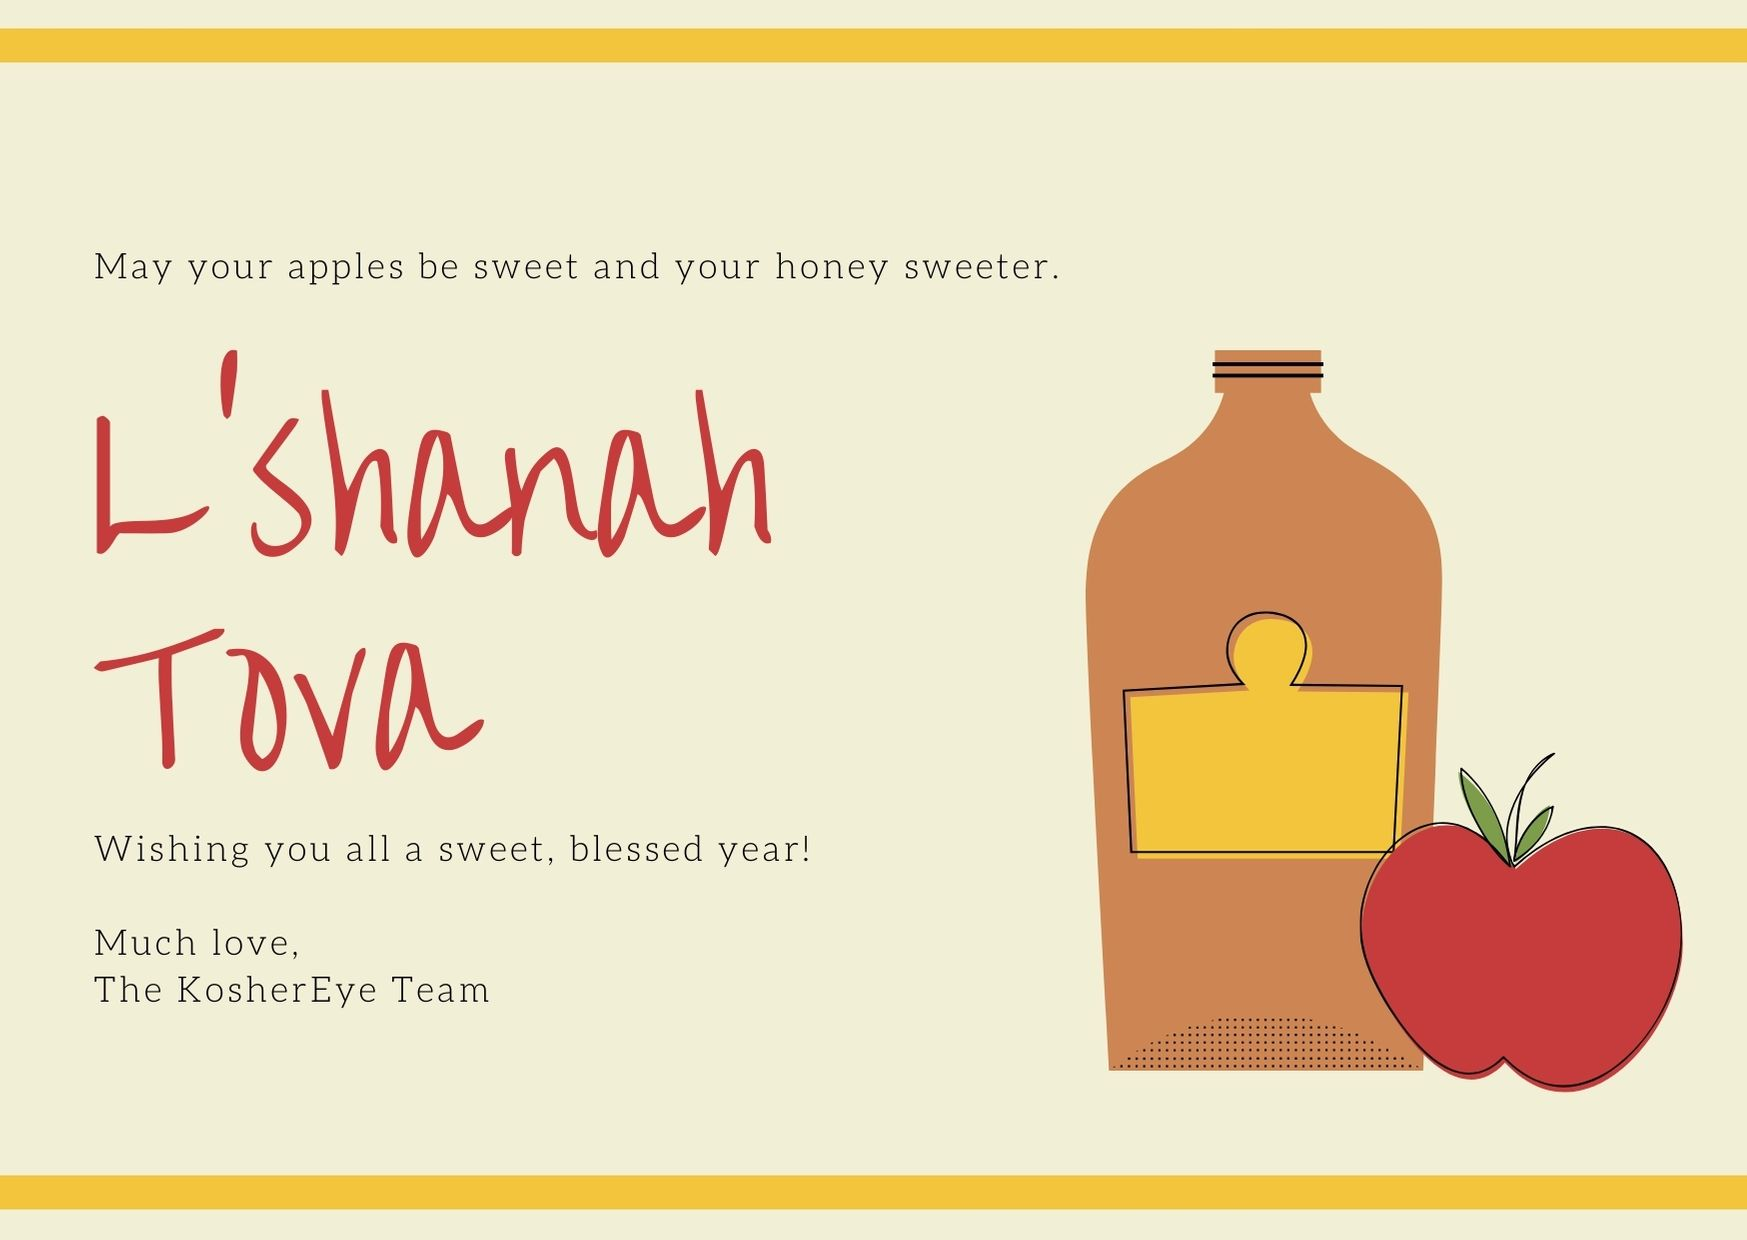 Beige Bottle and Apple Lshana Tovah Card